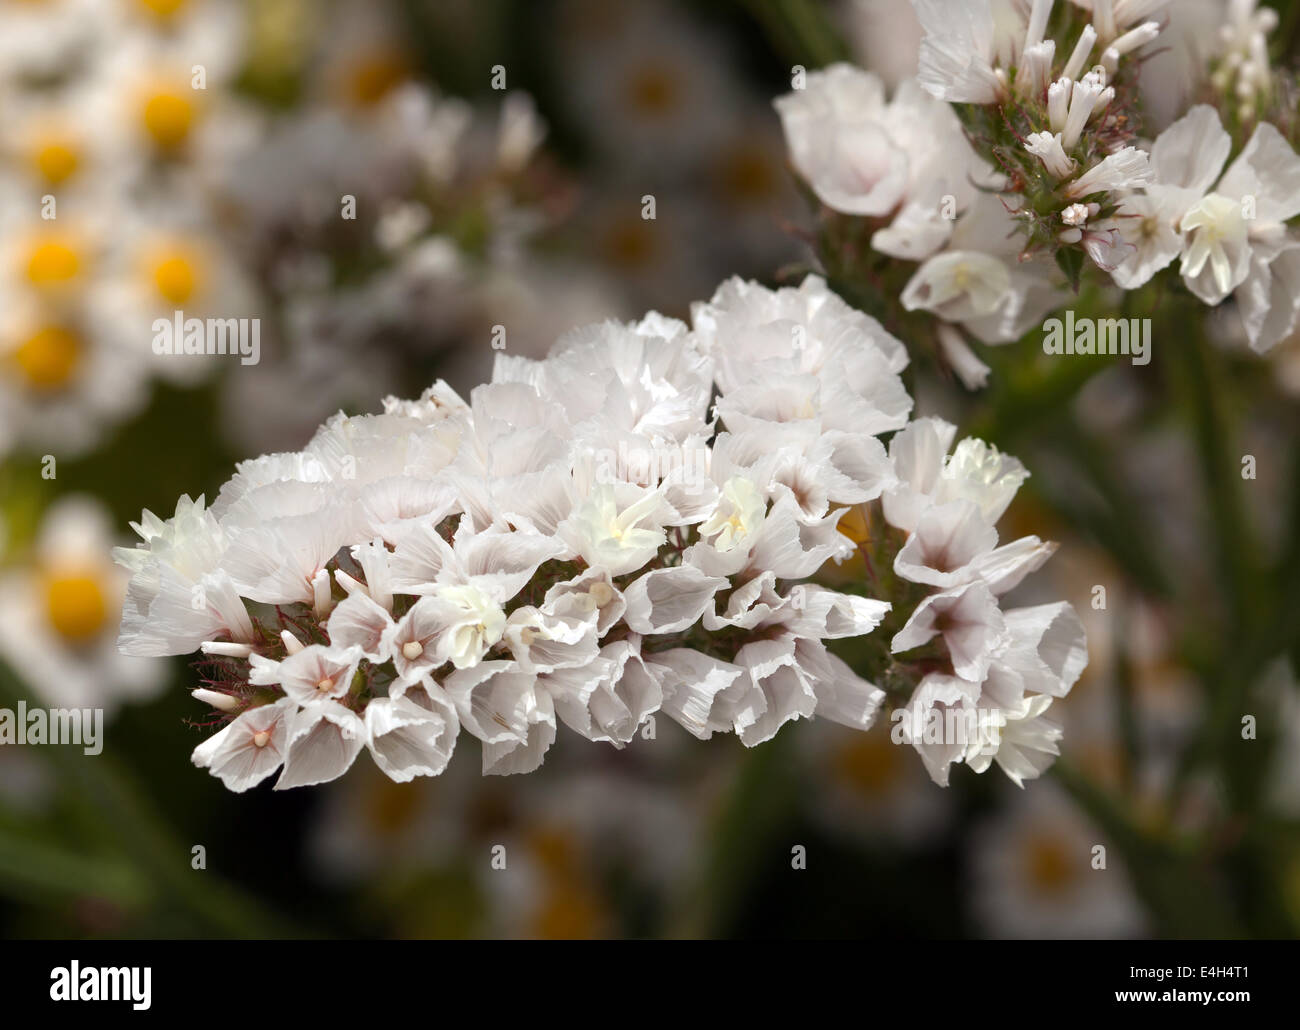 Close up image of a white statice in flower limonium sinuatum stock close up image of a white statice in flower limonium sinuatum iceberg mightylinksfo